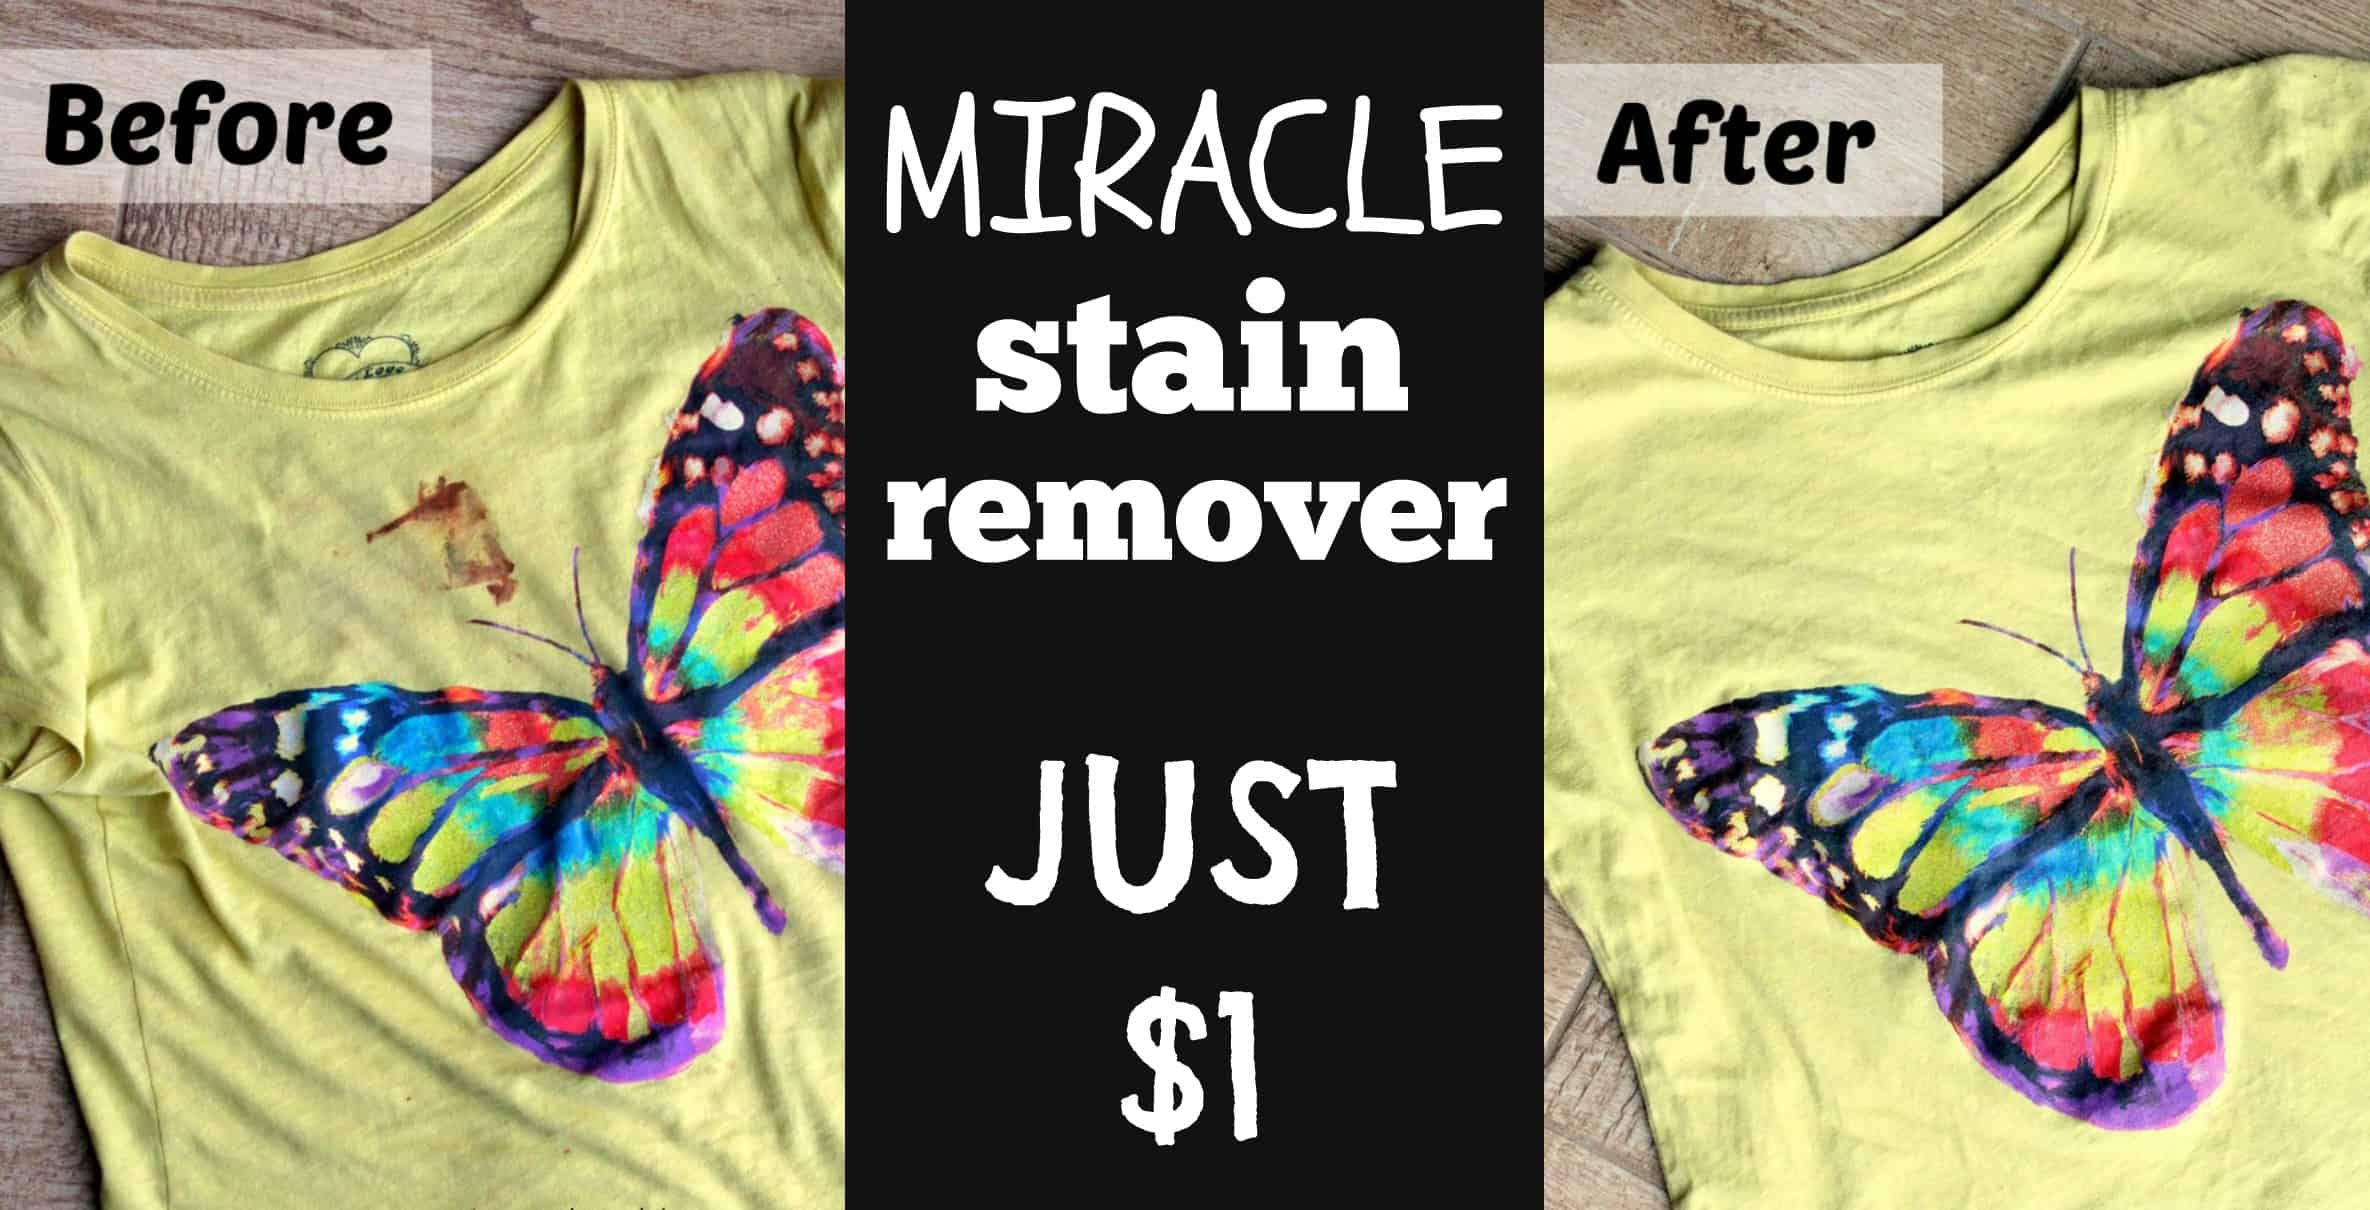 Got stains? This Miracle Stain Remover is the answer to your problems. At just $1.00, you will be amazed at what it can do for you!